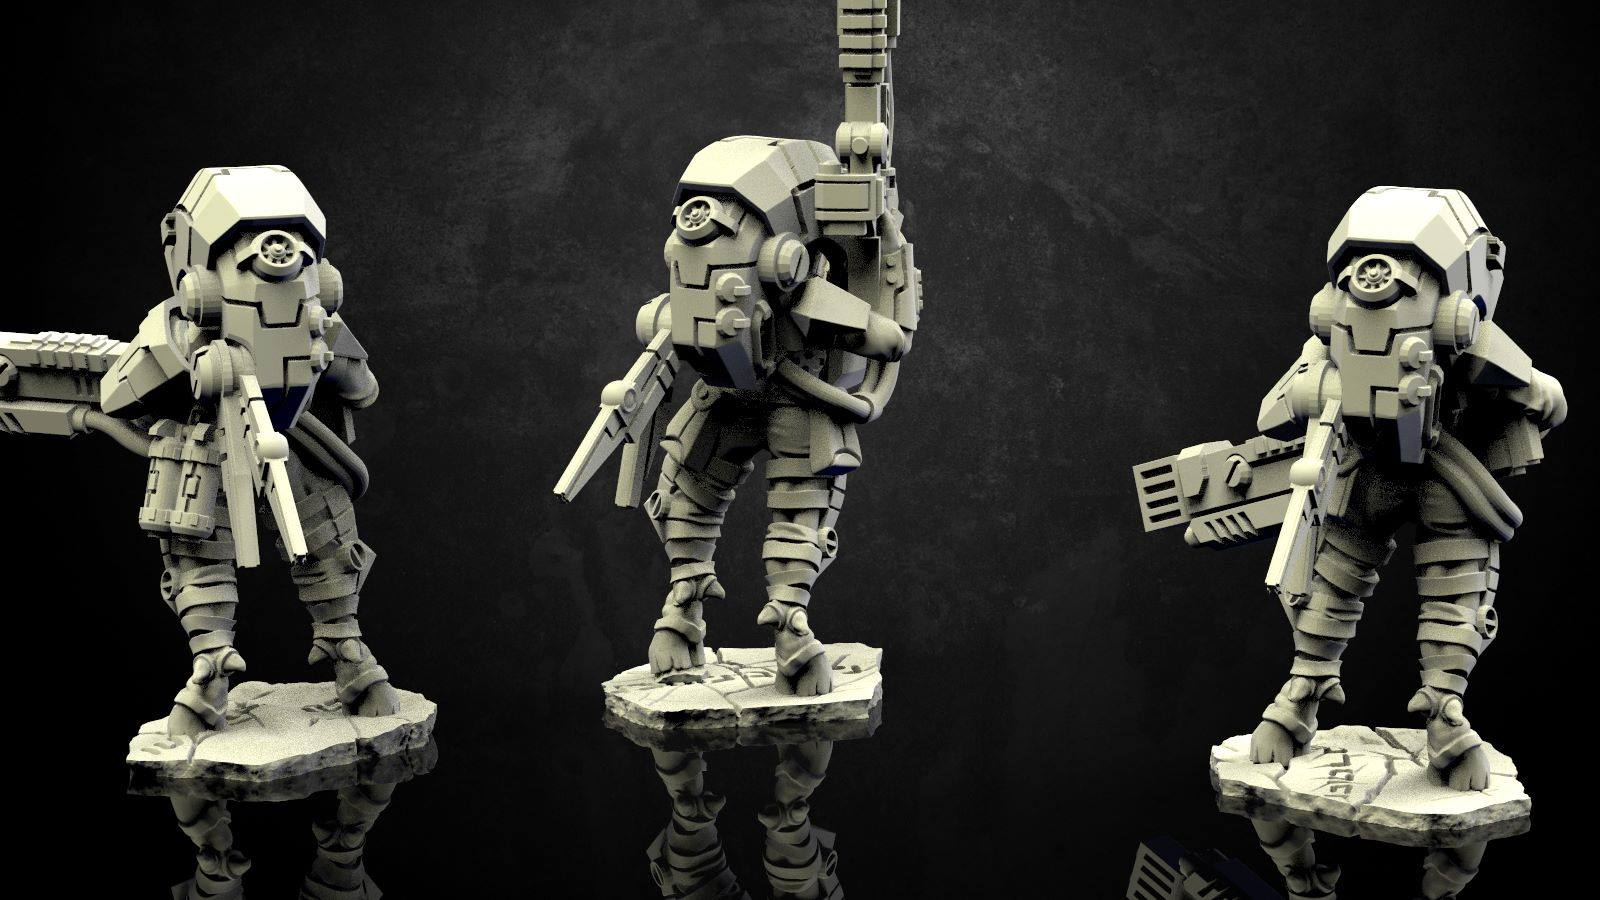 Wargame Exclusive Working On Stealthy Alien Operatives – OnTableTop